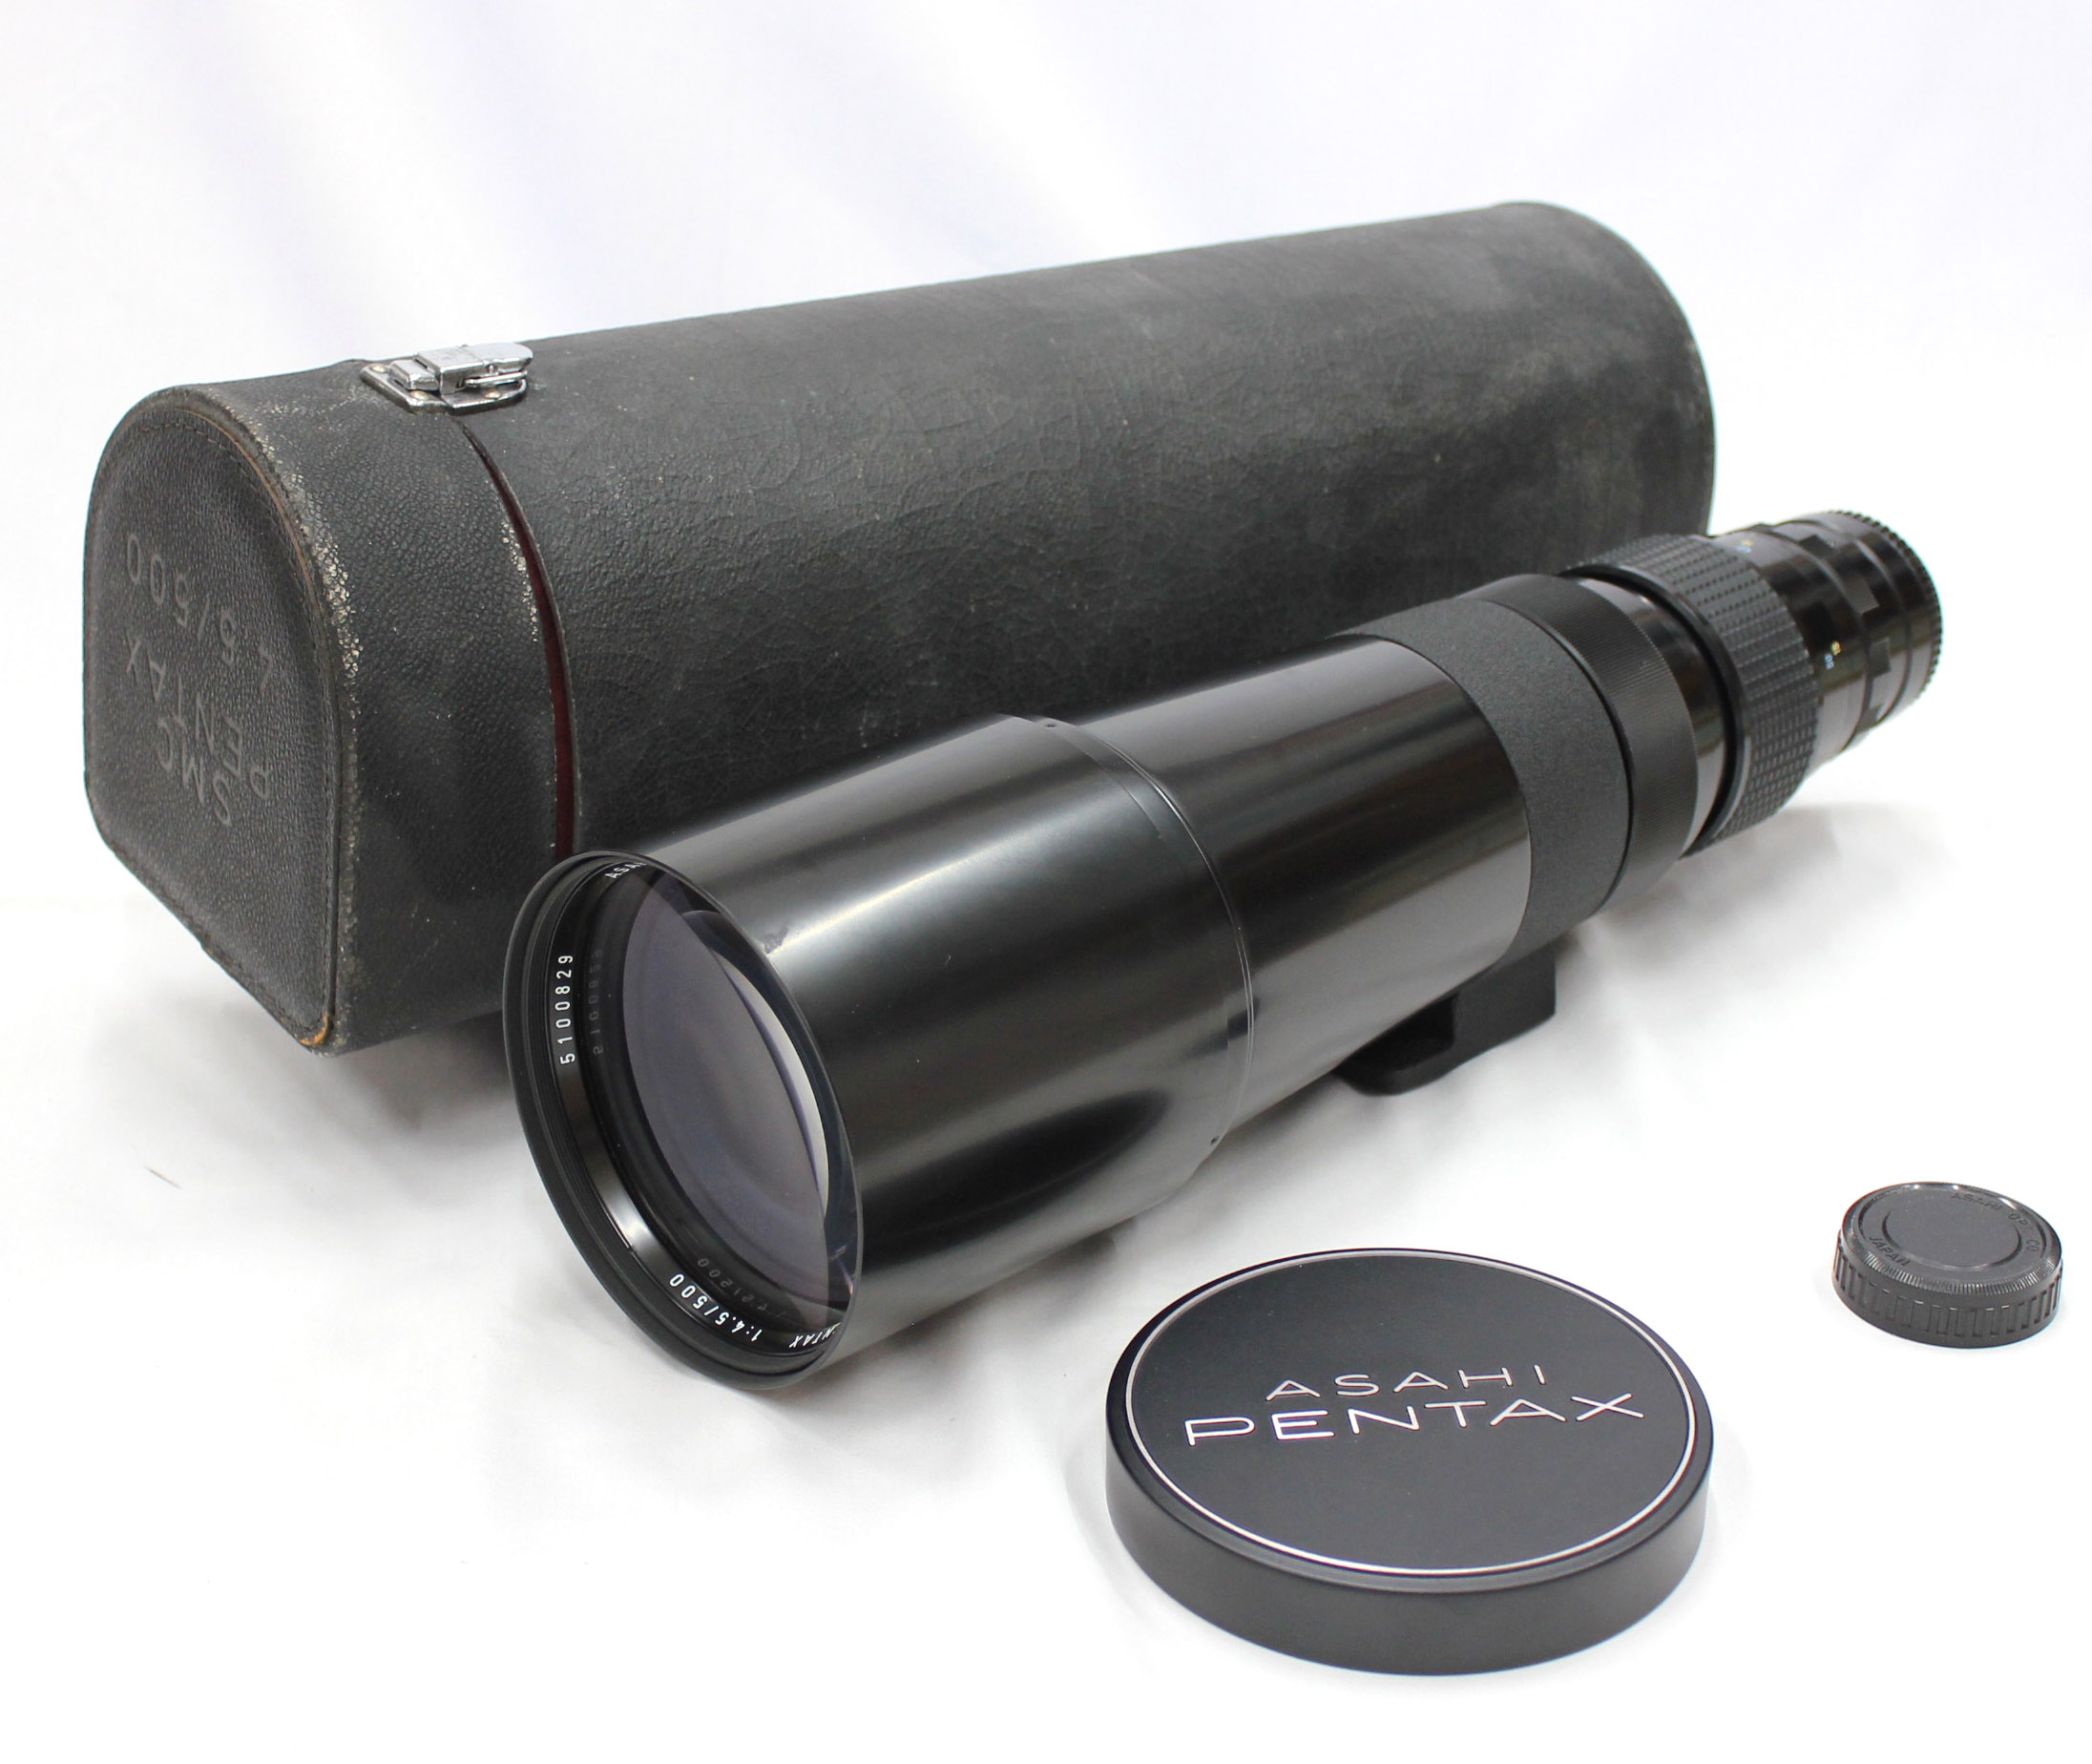 Japan Used Camera Shop | [Near Mint] SMC Pentax 500mm F/4.5 Telephoto MF Lens for K Mount from Japan